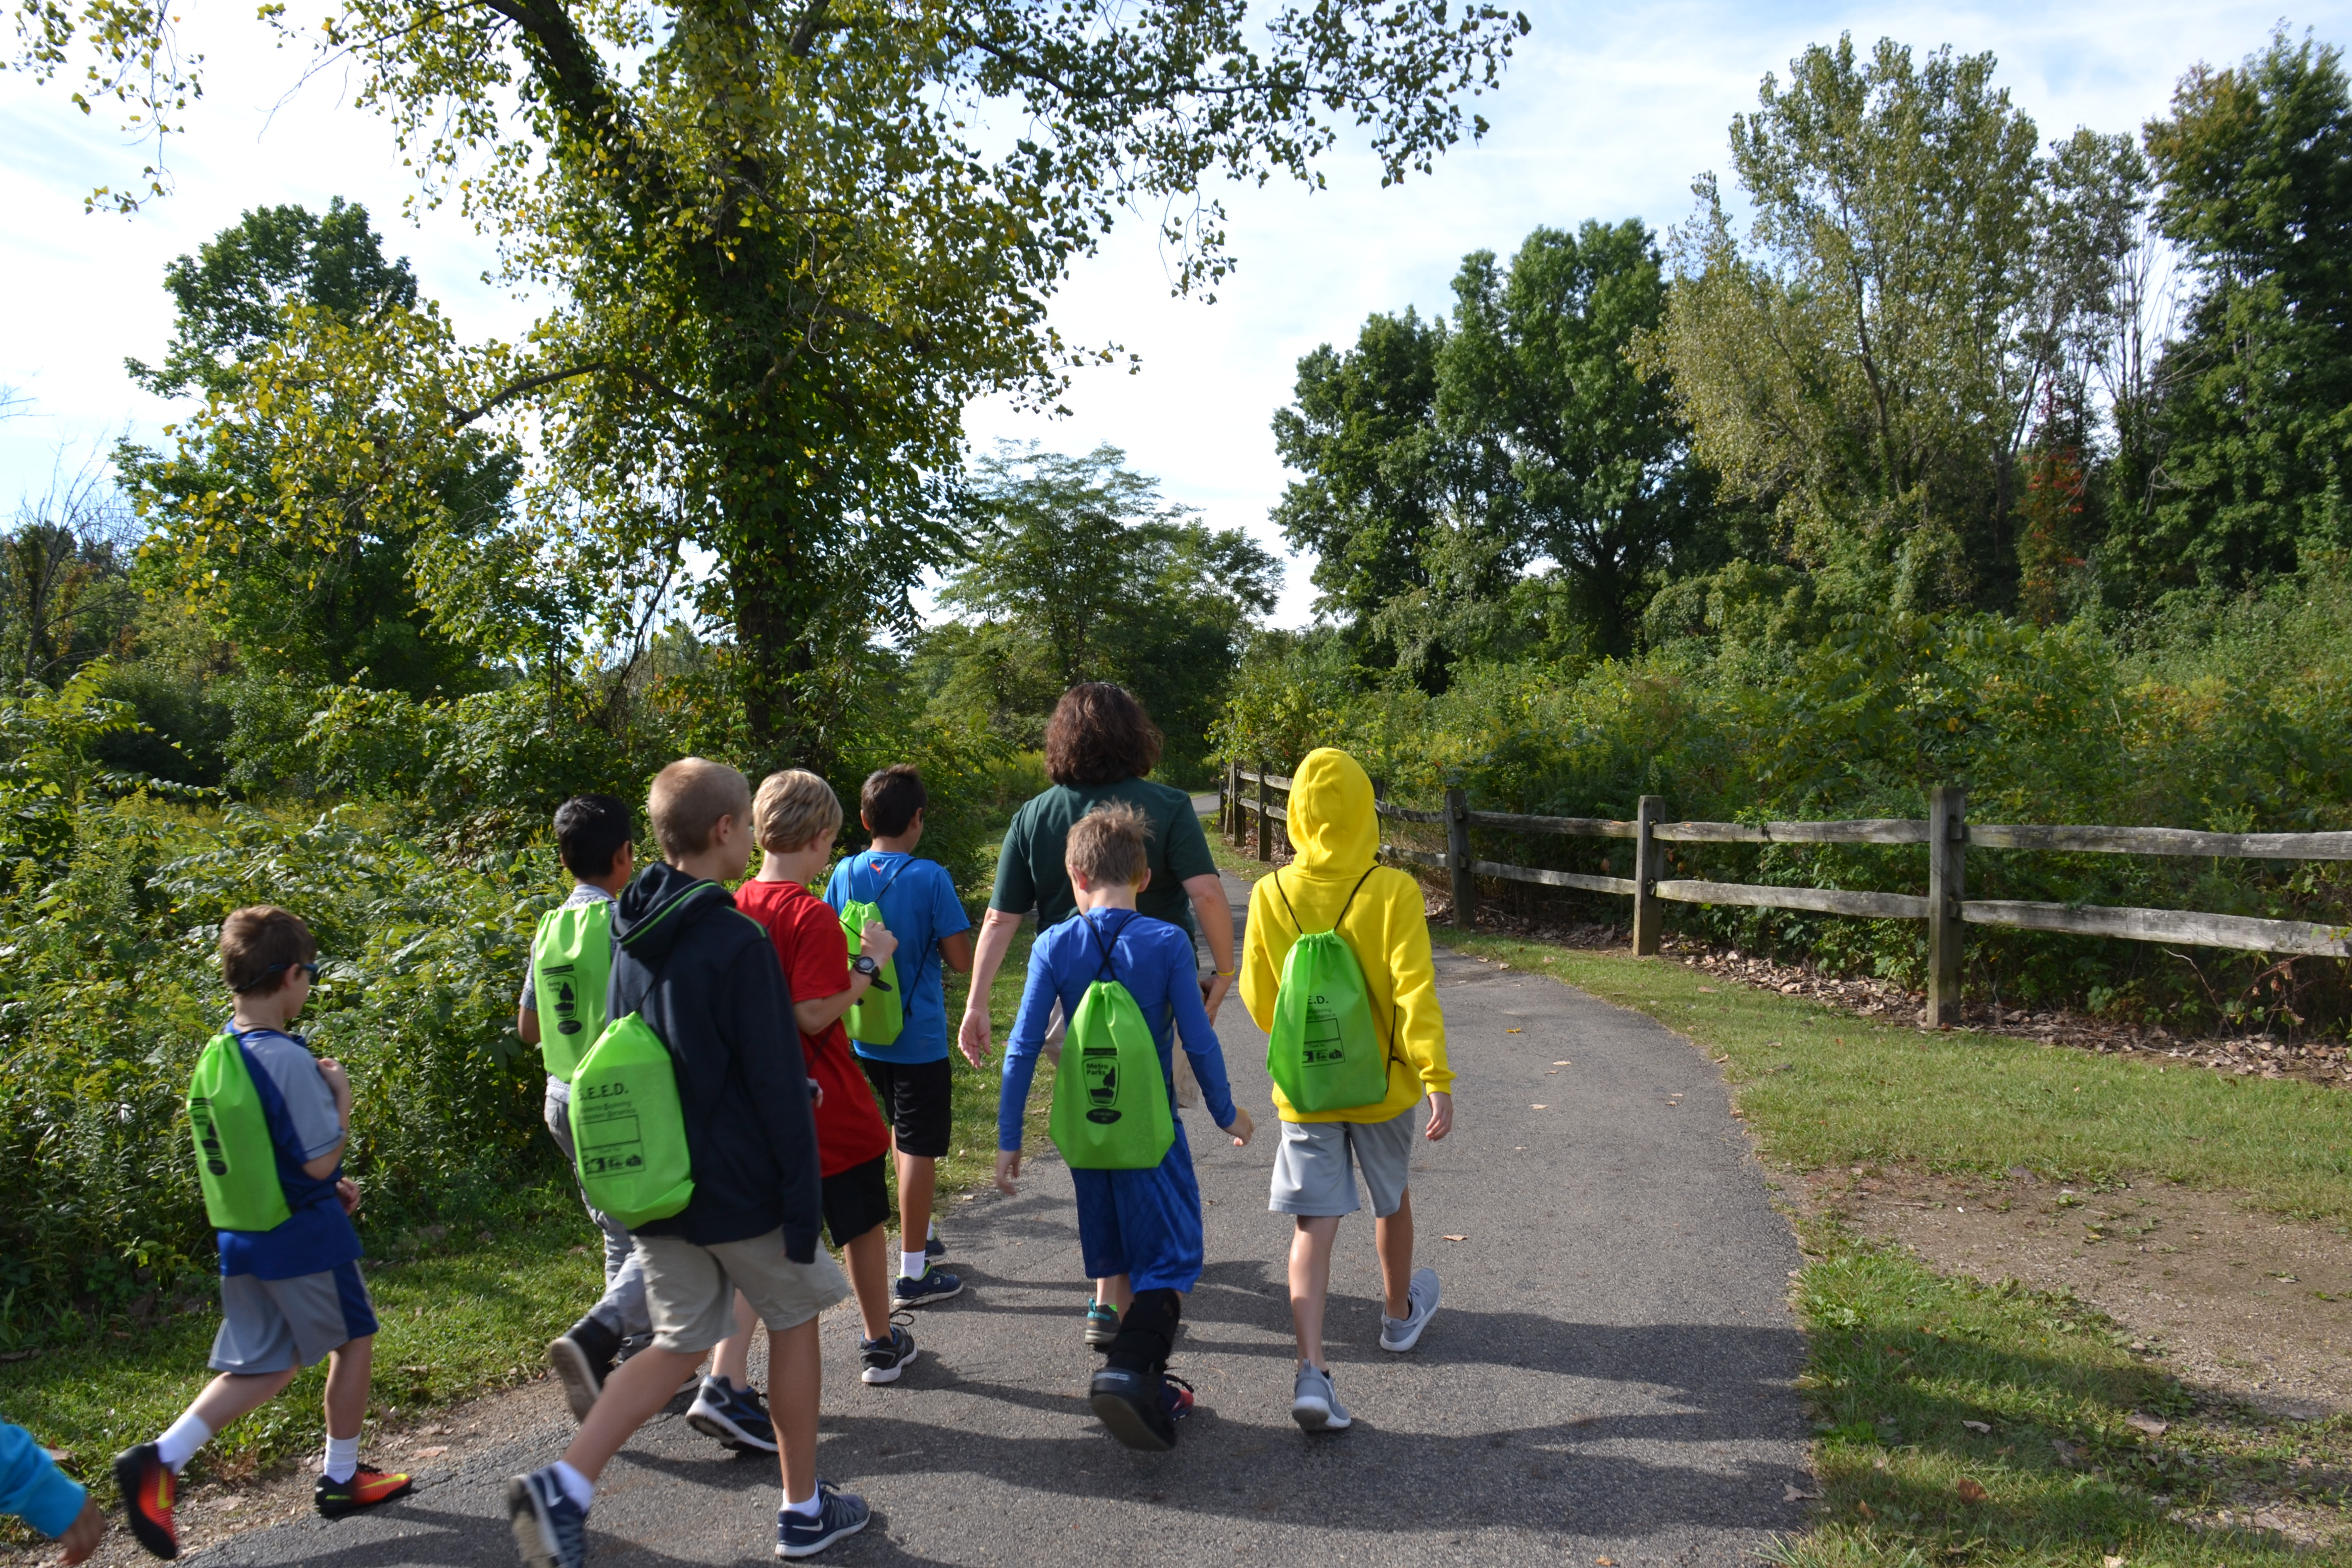 Students hit the trail to explore